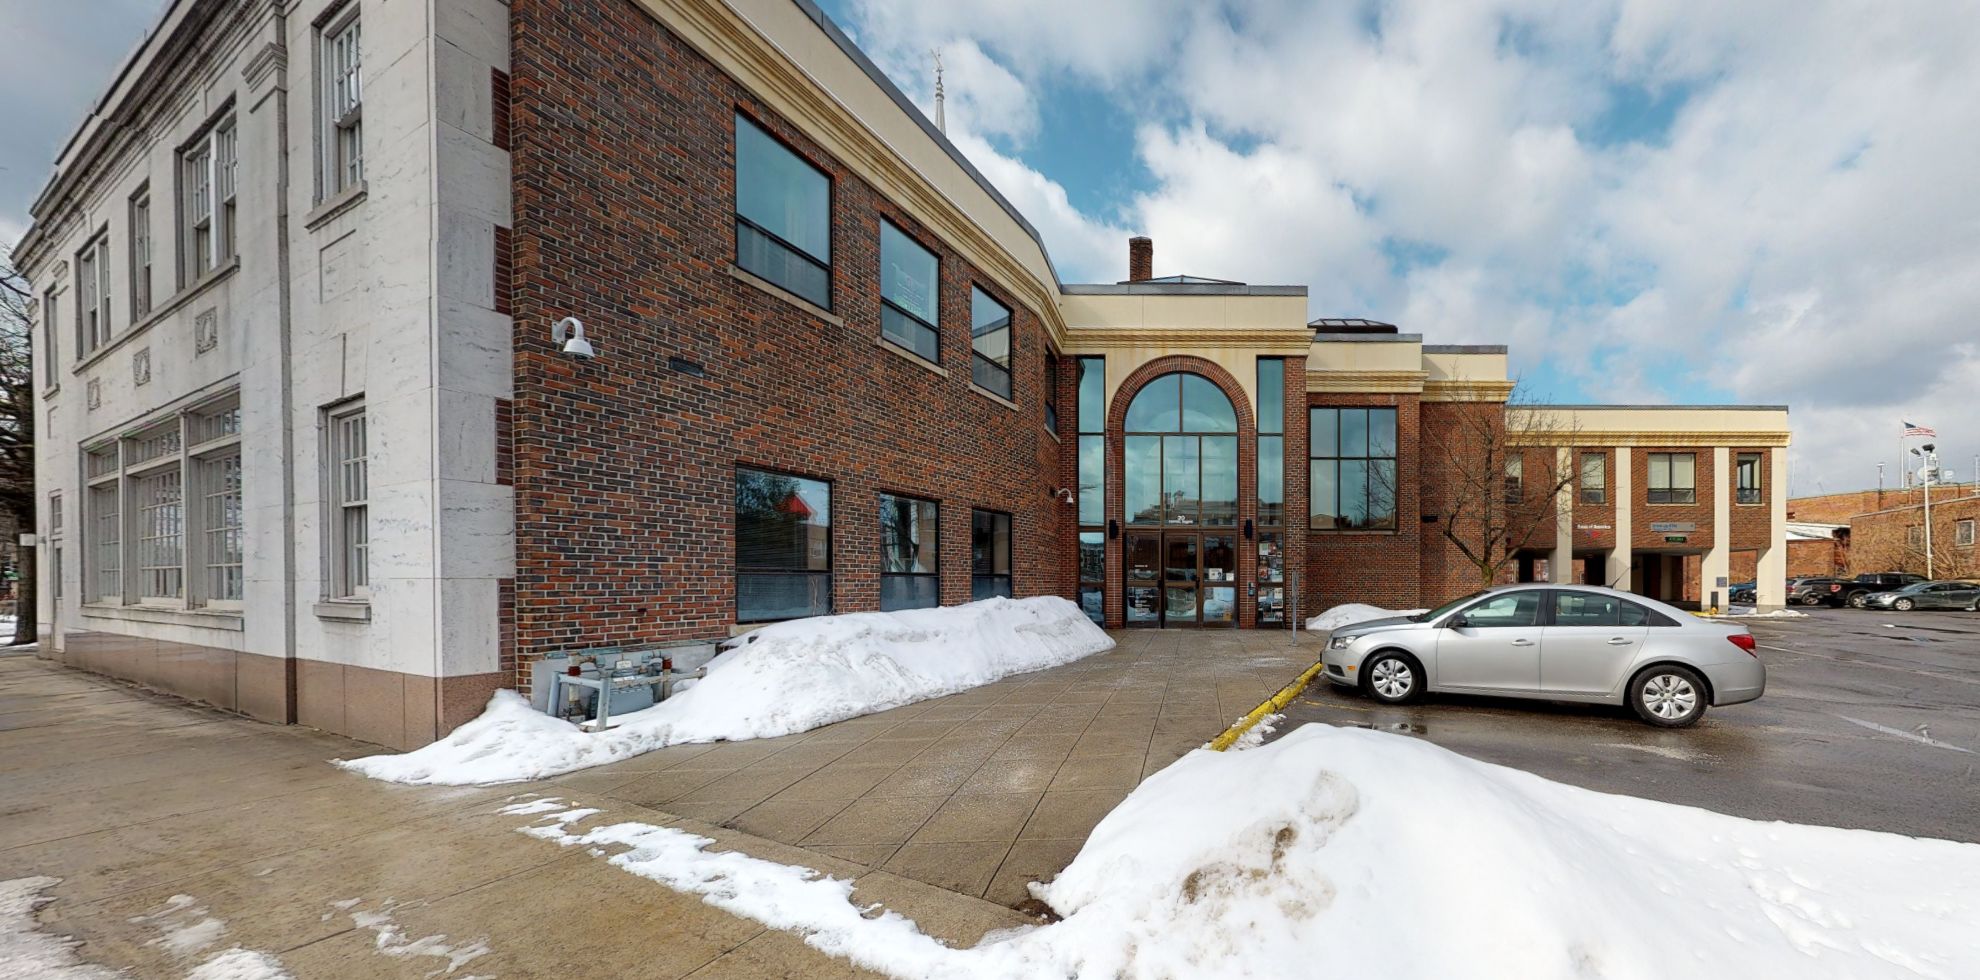 Bank of America financial center with drive-thru ATM | 20 Central Sq, Keene, NH 03431